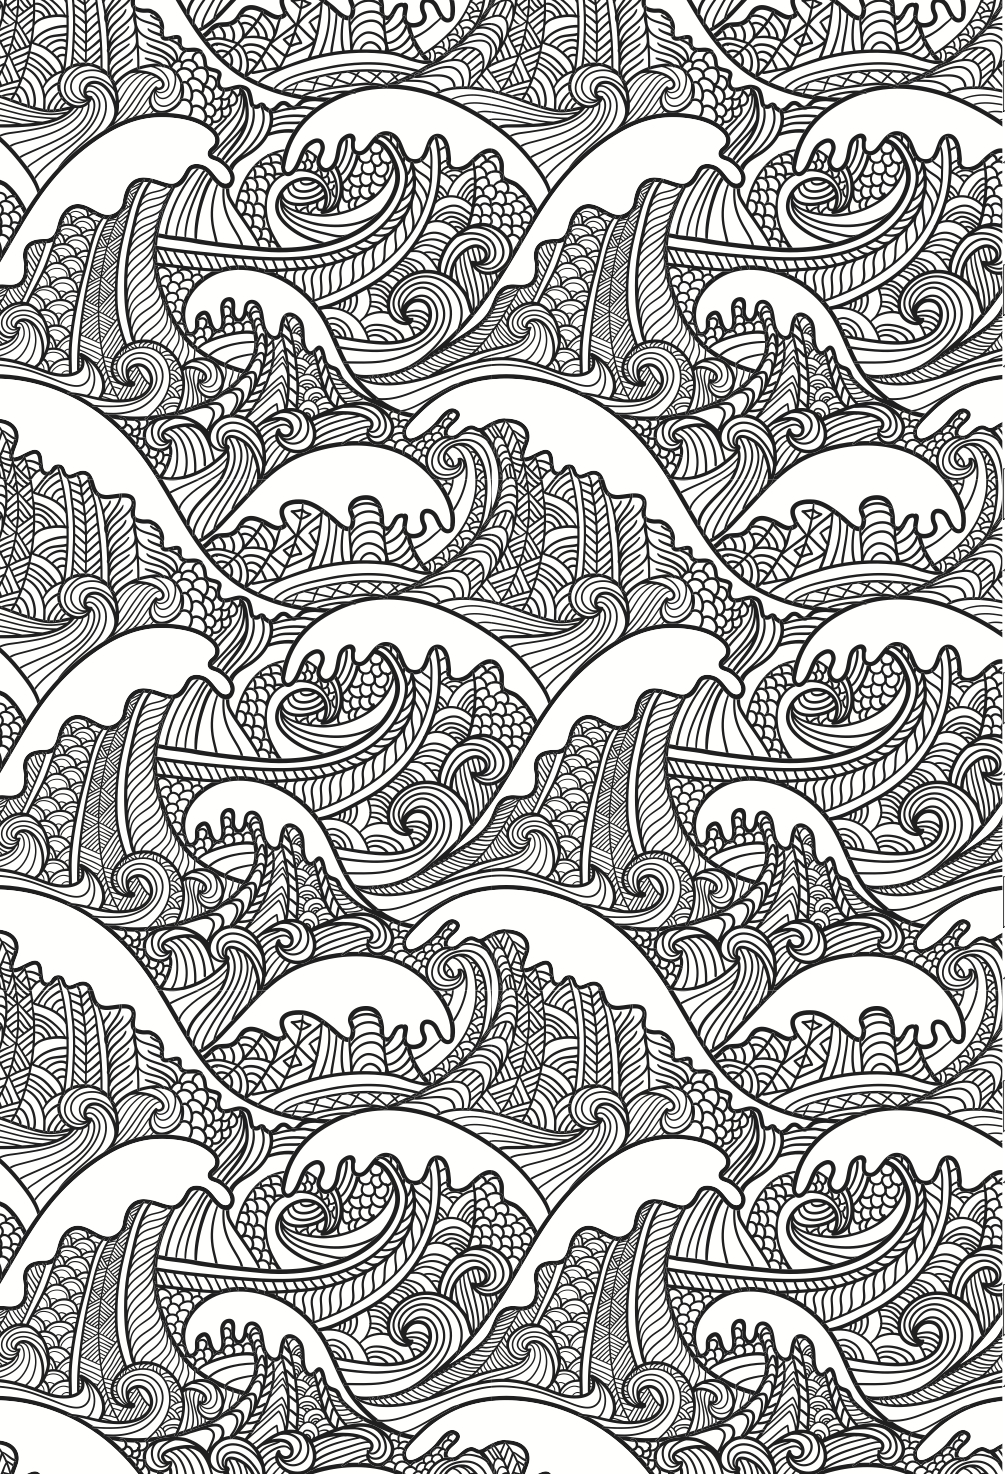 beautiful waves colouring page in an artistic japanese style grown up colouring - Colouring Pages Of Books